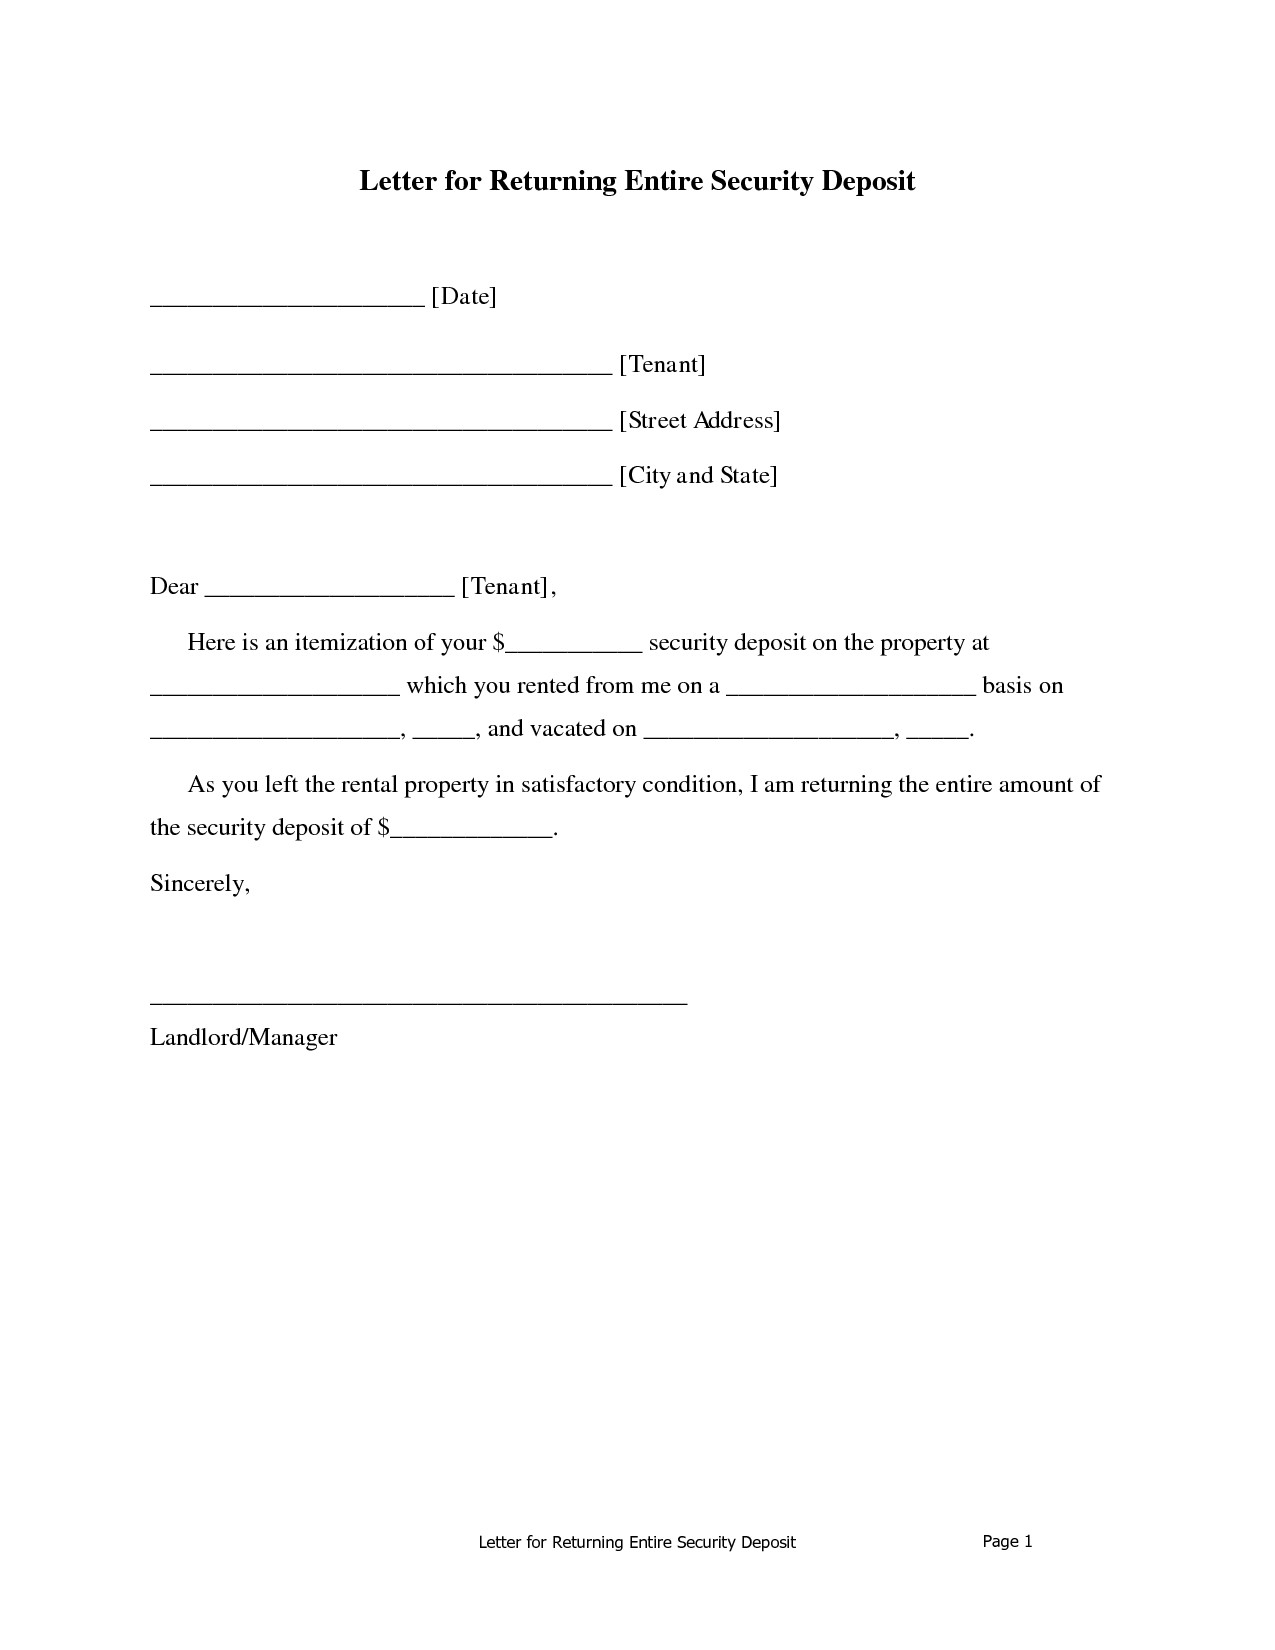 Security Deposit Demand Letter Template Florida - Return Security Deposit Letter Landlord Refund Recent Add